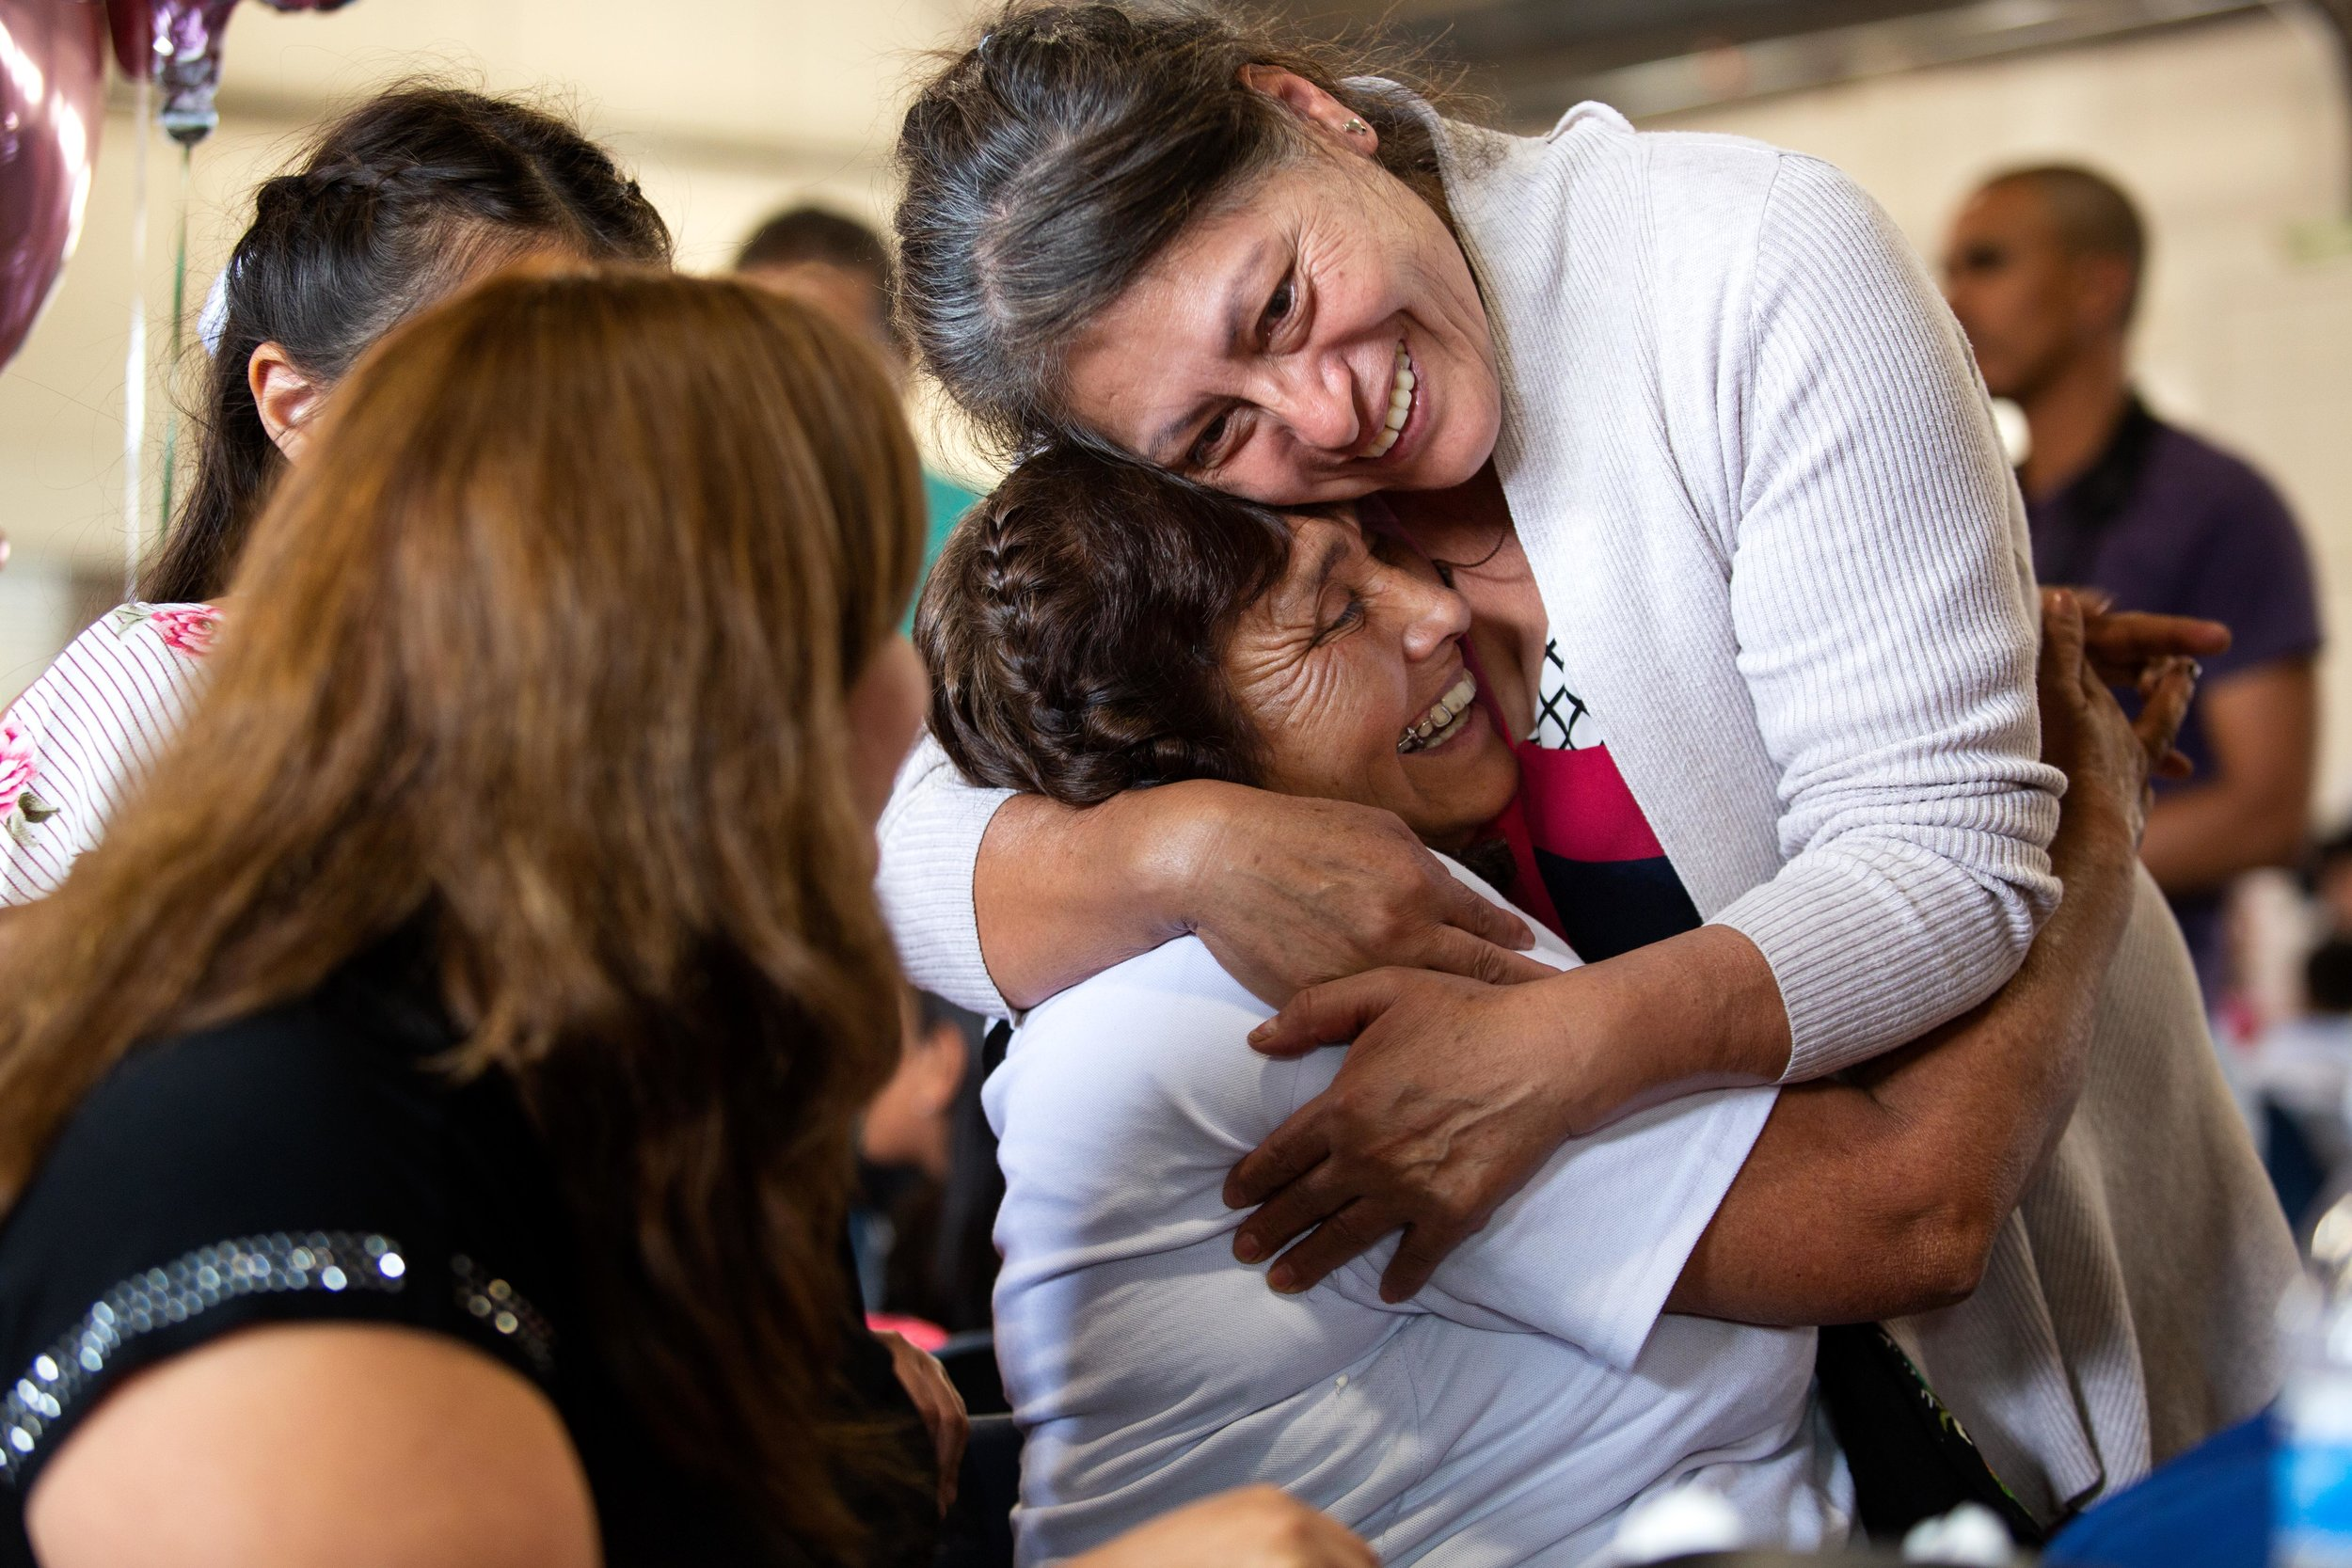 ROUND ROCK, TX. August 10, 2018. Rosa Barriga Barriga hugs her friend Delia Barriga after traveling from the Mexican State of Michoacán to be reunited with family members she has not seen in over a decade. Montinique Monroe for KUT News